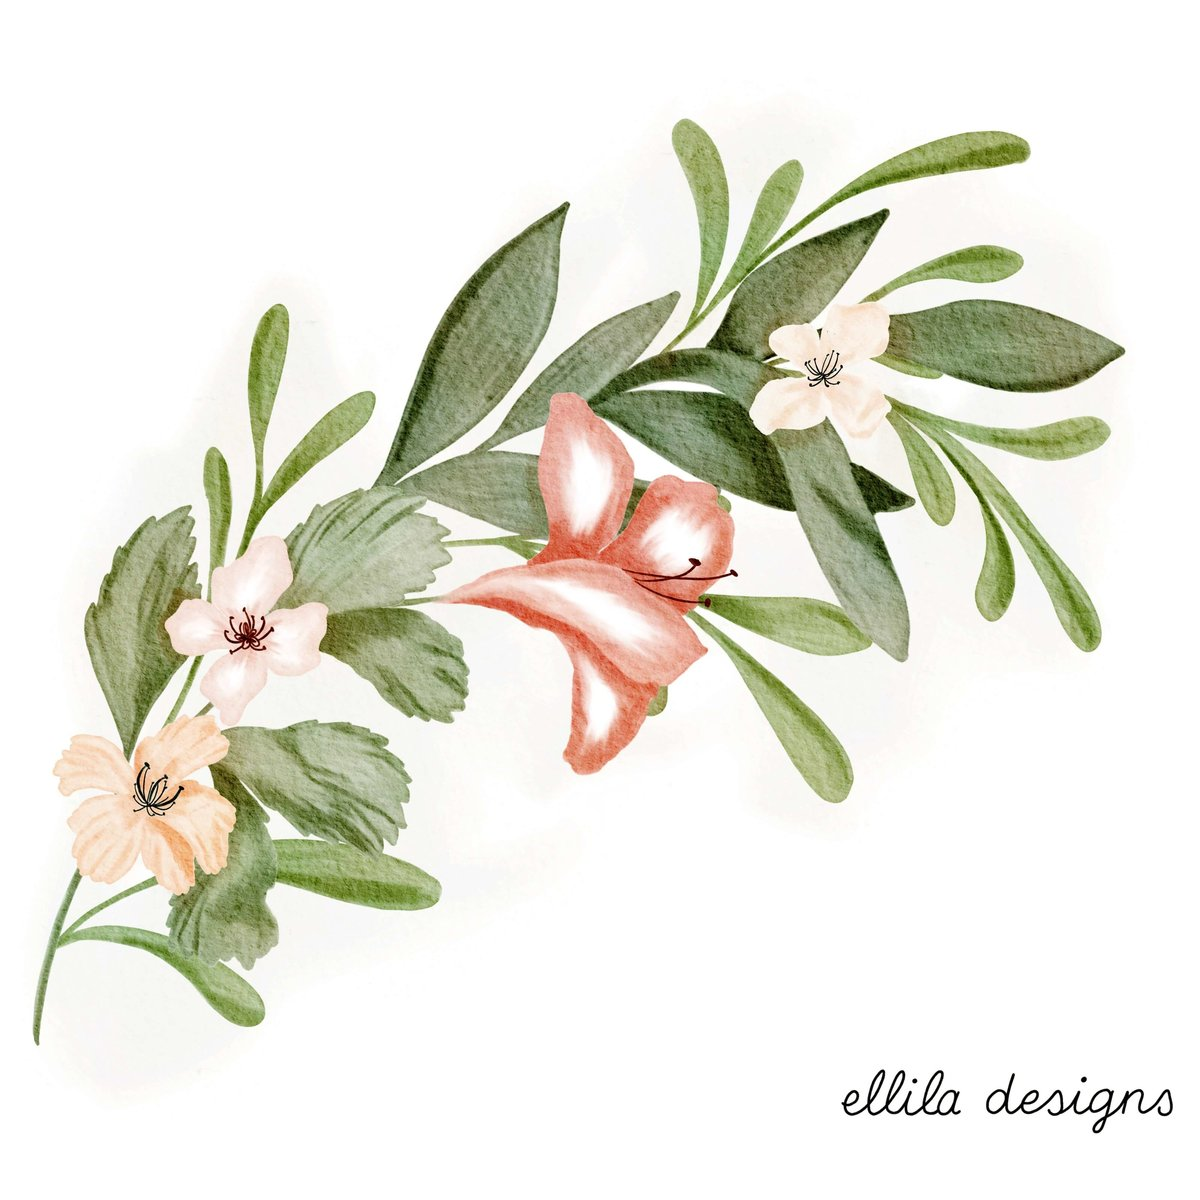 Flowers illustration Ellila Designs